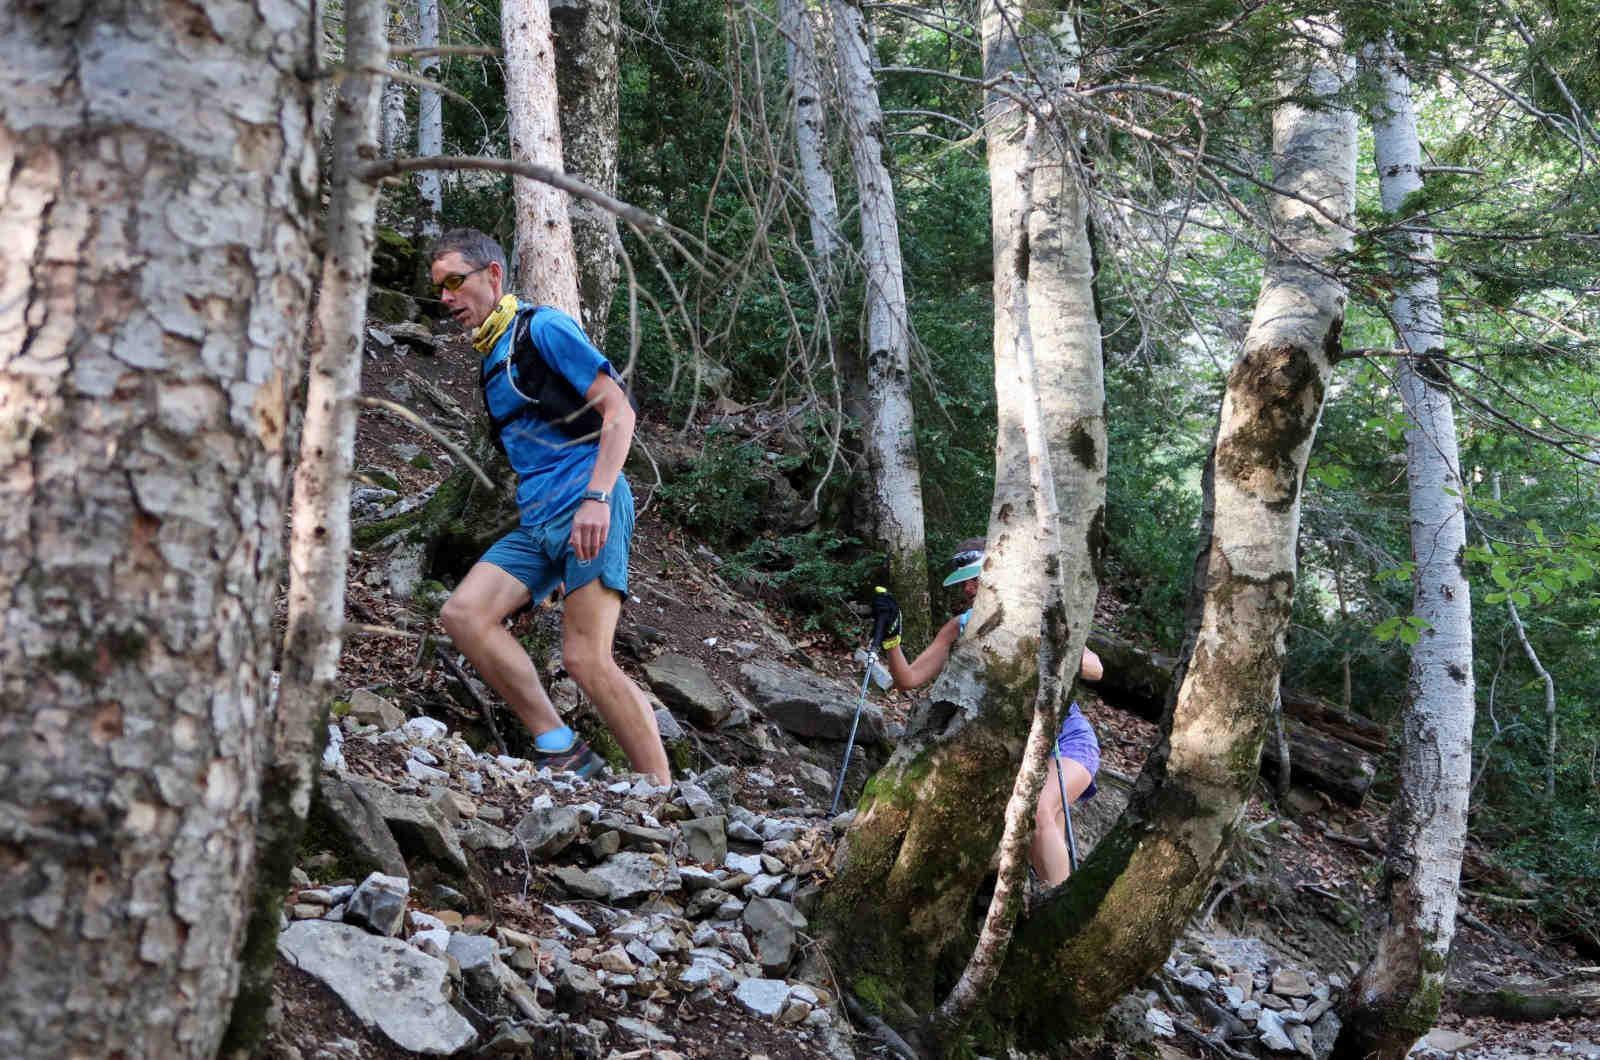 Trail running guide Jonathan runs up a wooded mountain path leading a group of trail runners in the Spanish Pyrenees on our Trail Running Holiday